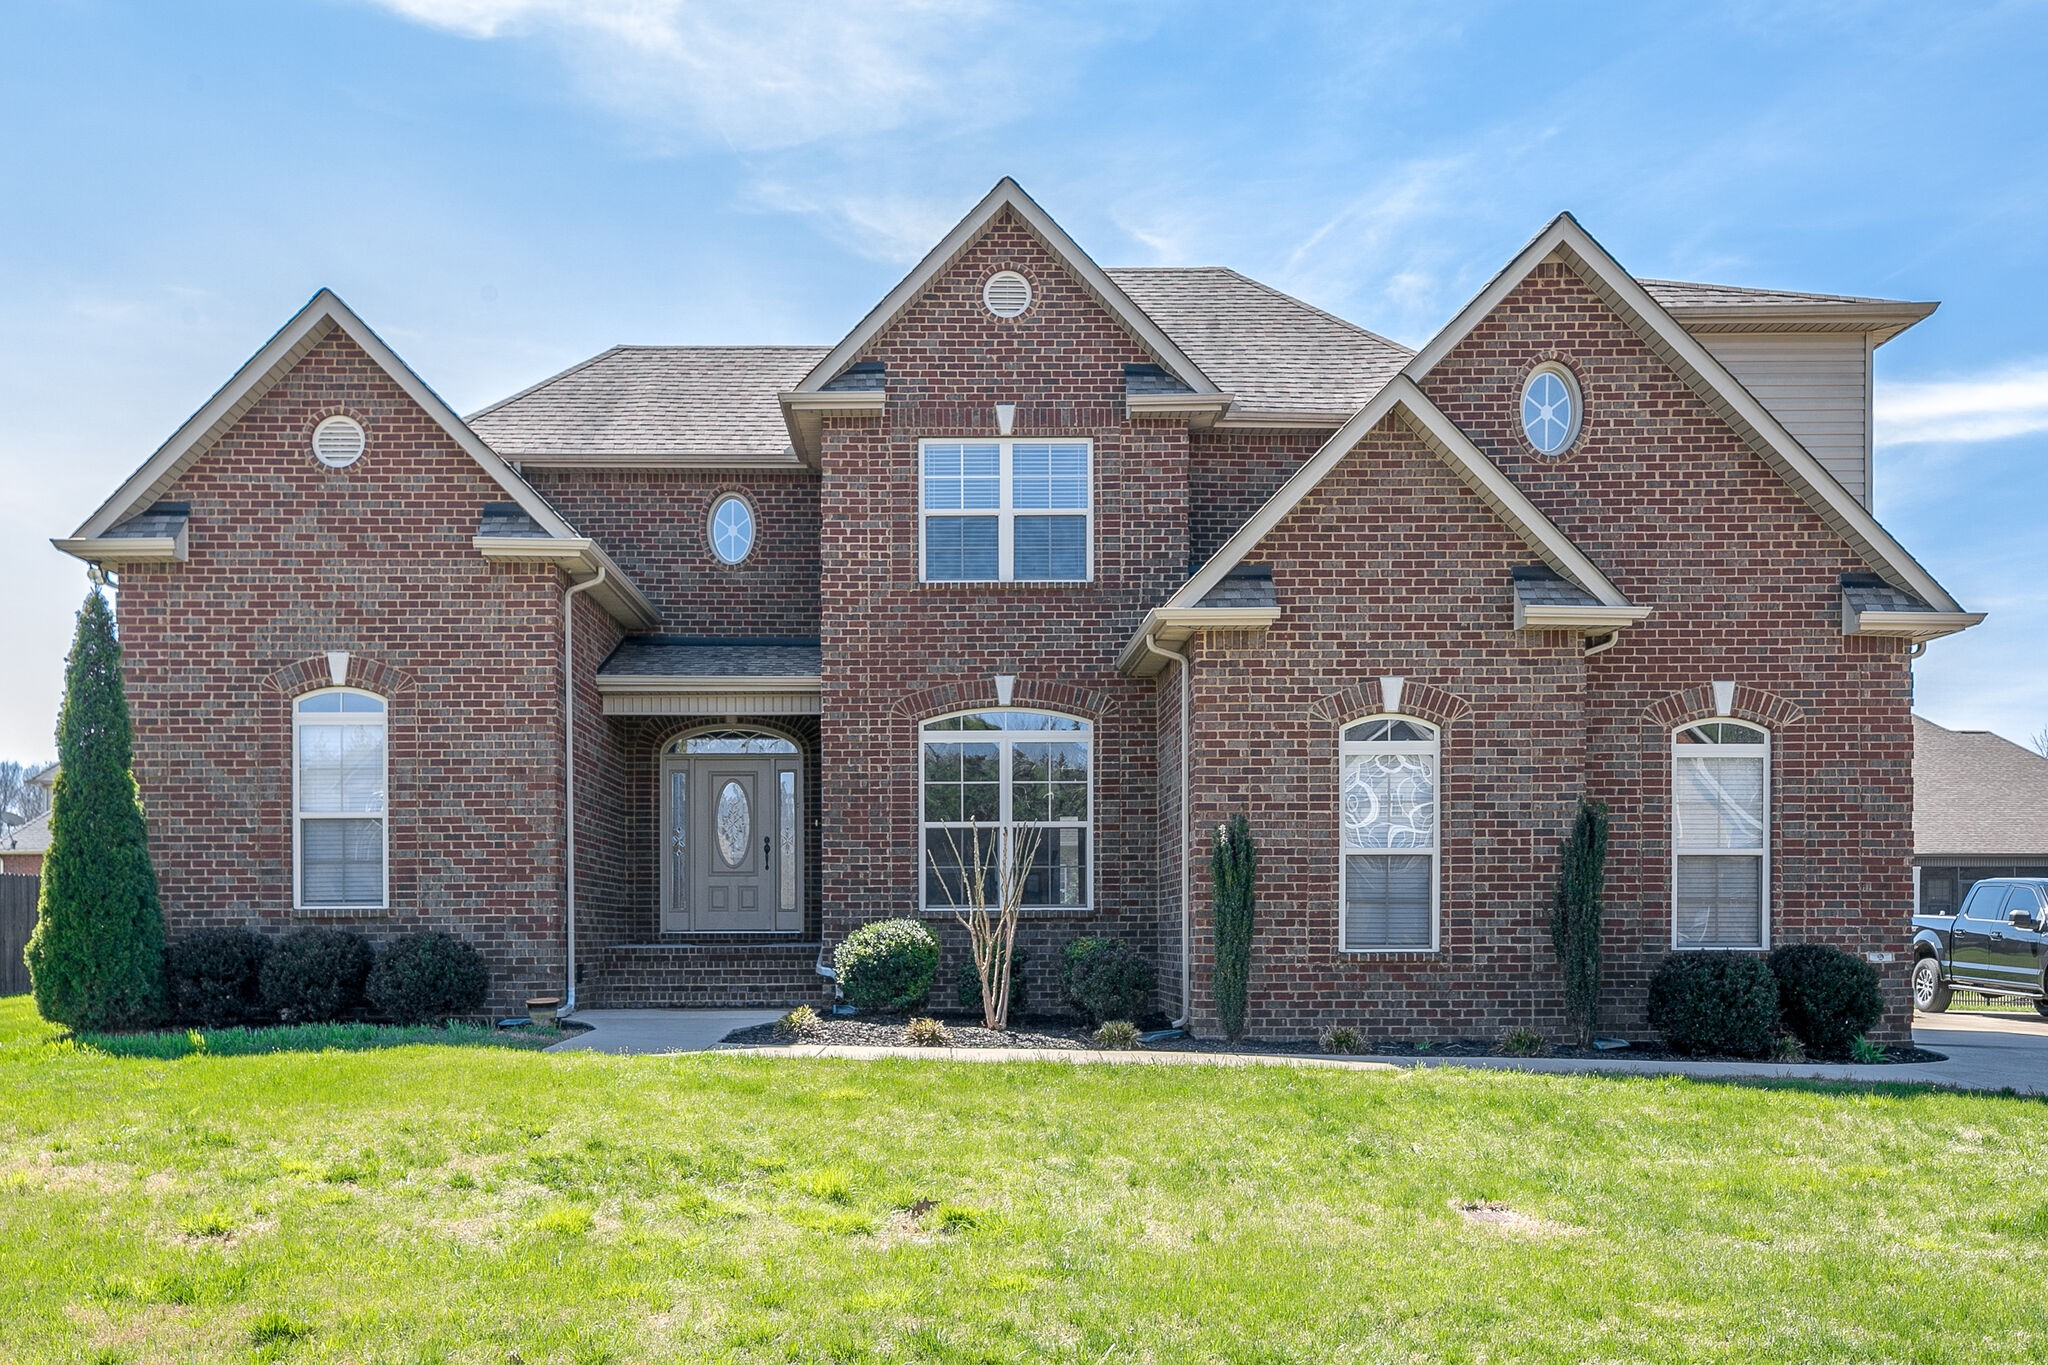 4330 Whirlaway Drive Property Photo - Murfreesboro, TN real estate listing